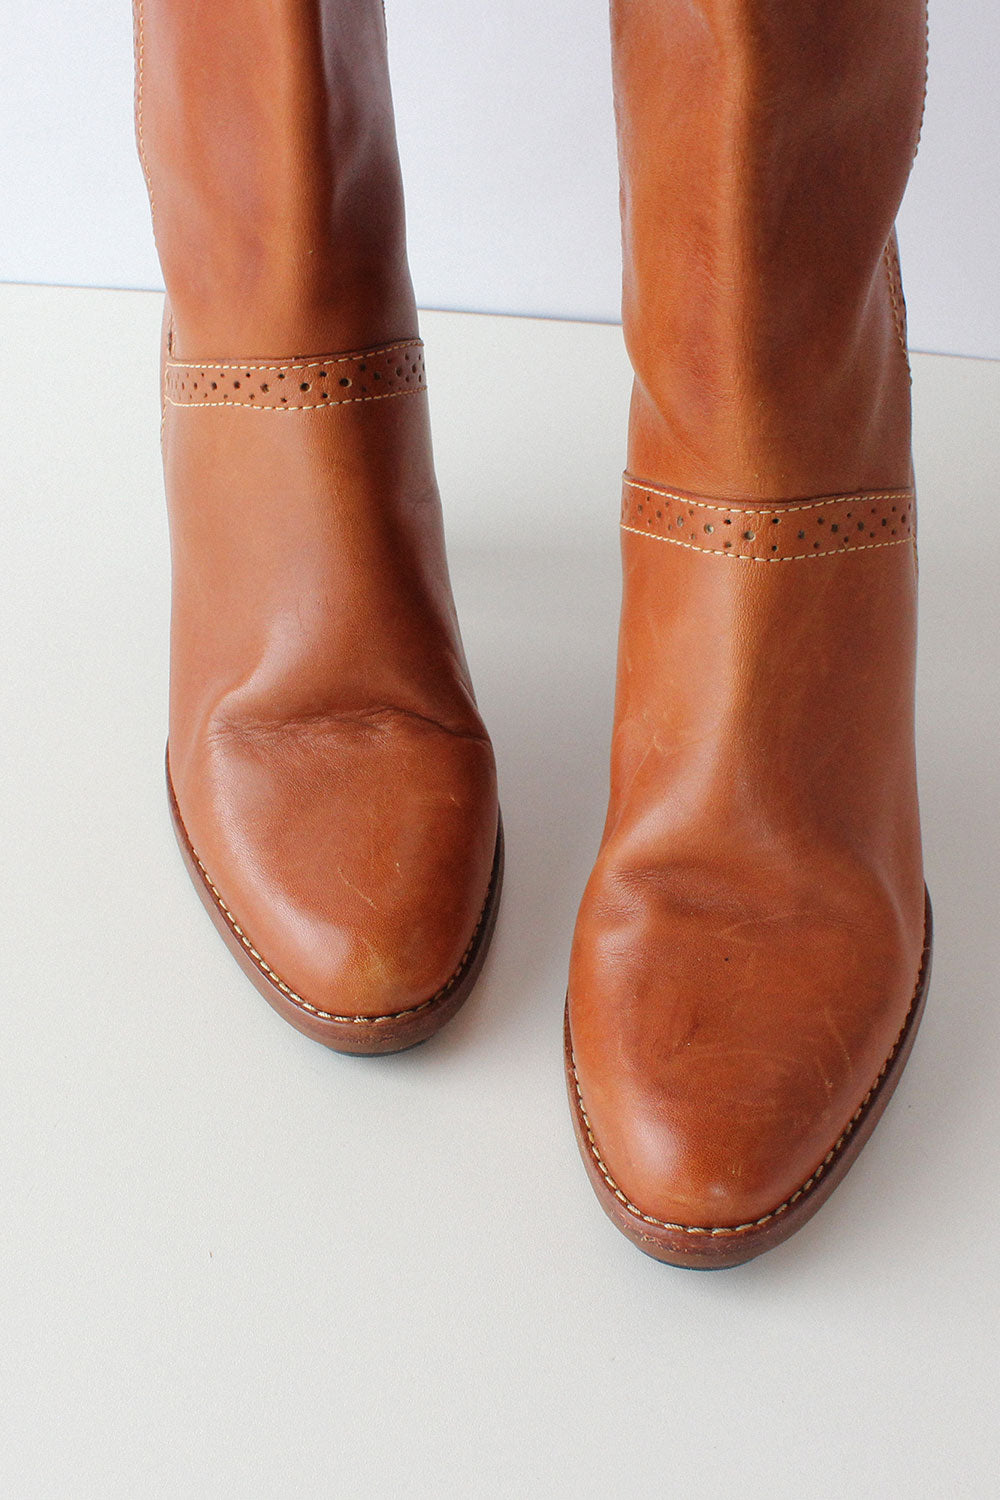 Thom McAn Chestnut Leather Boots 8 1/2 - 9